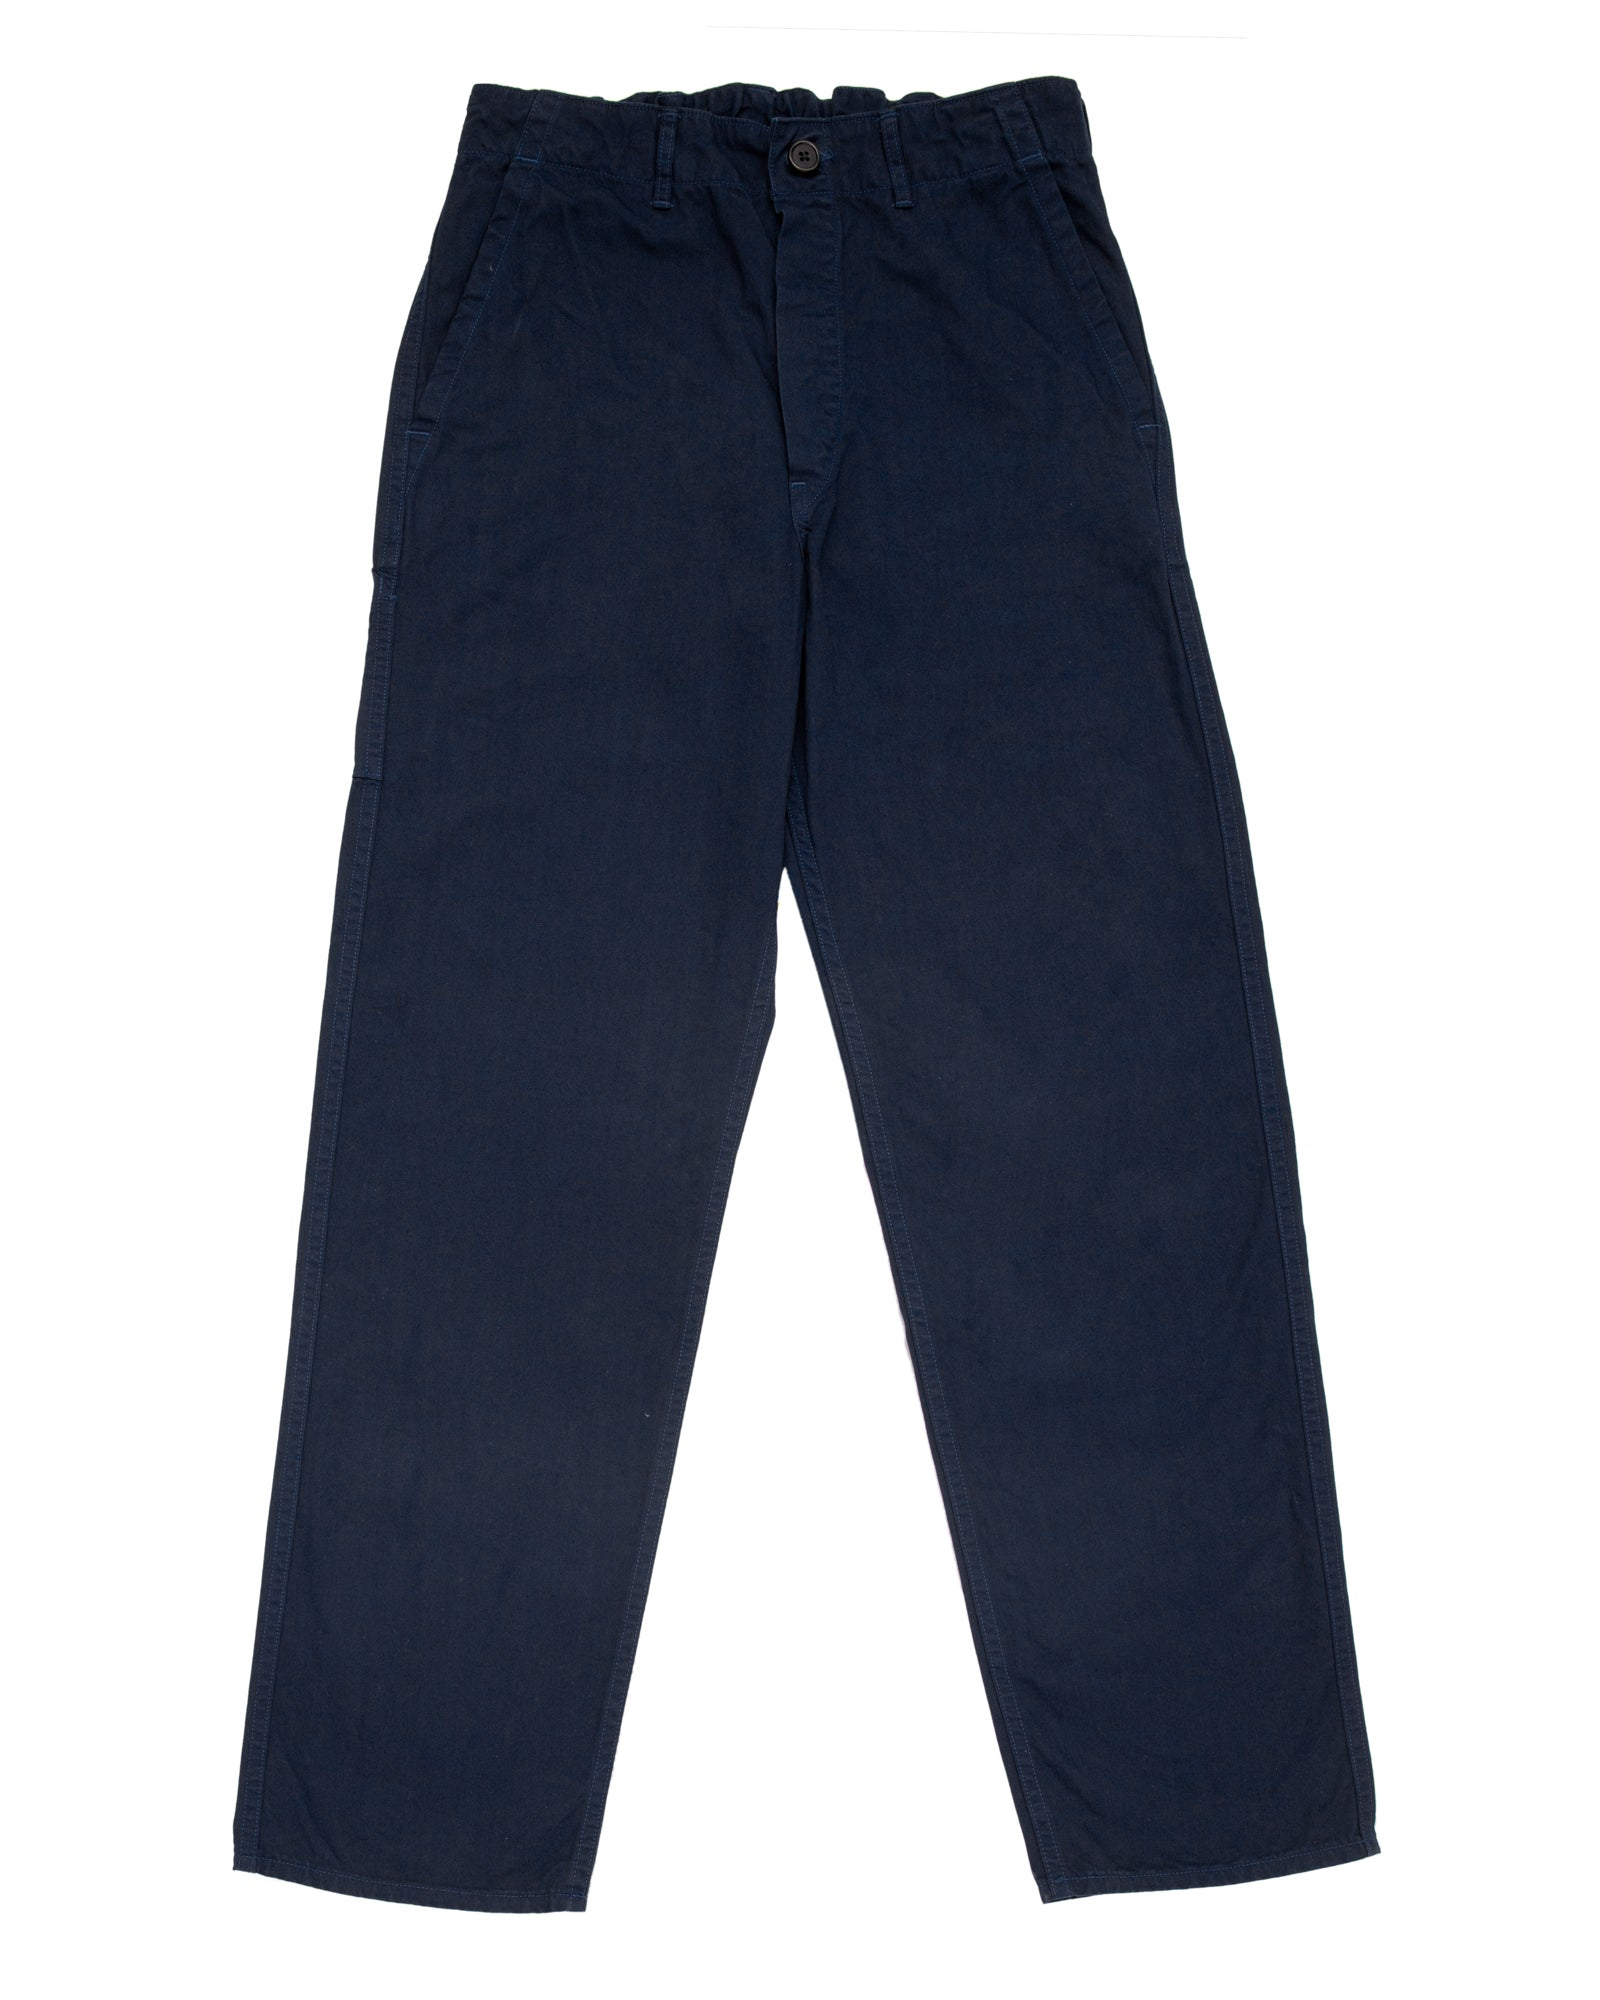 French Work Pants - Navy